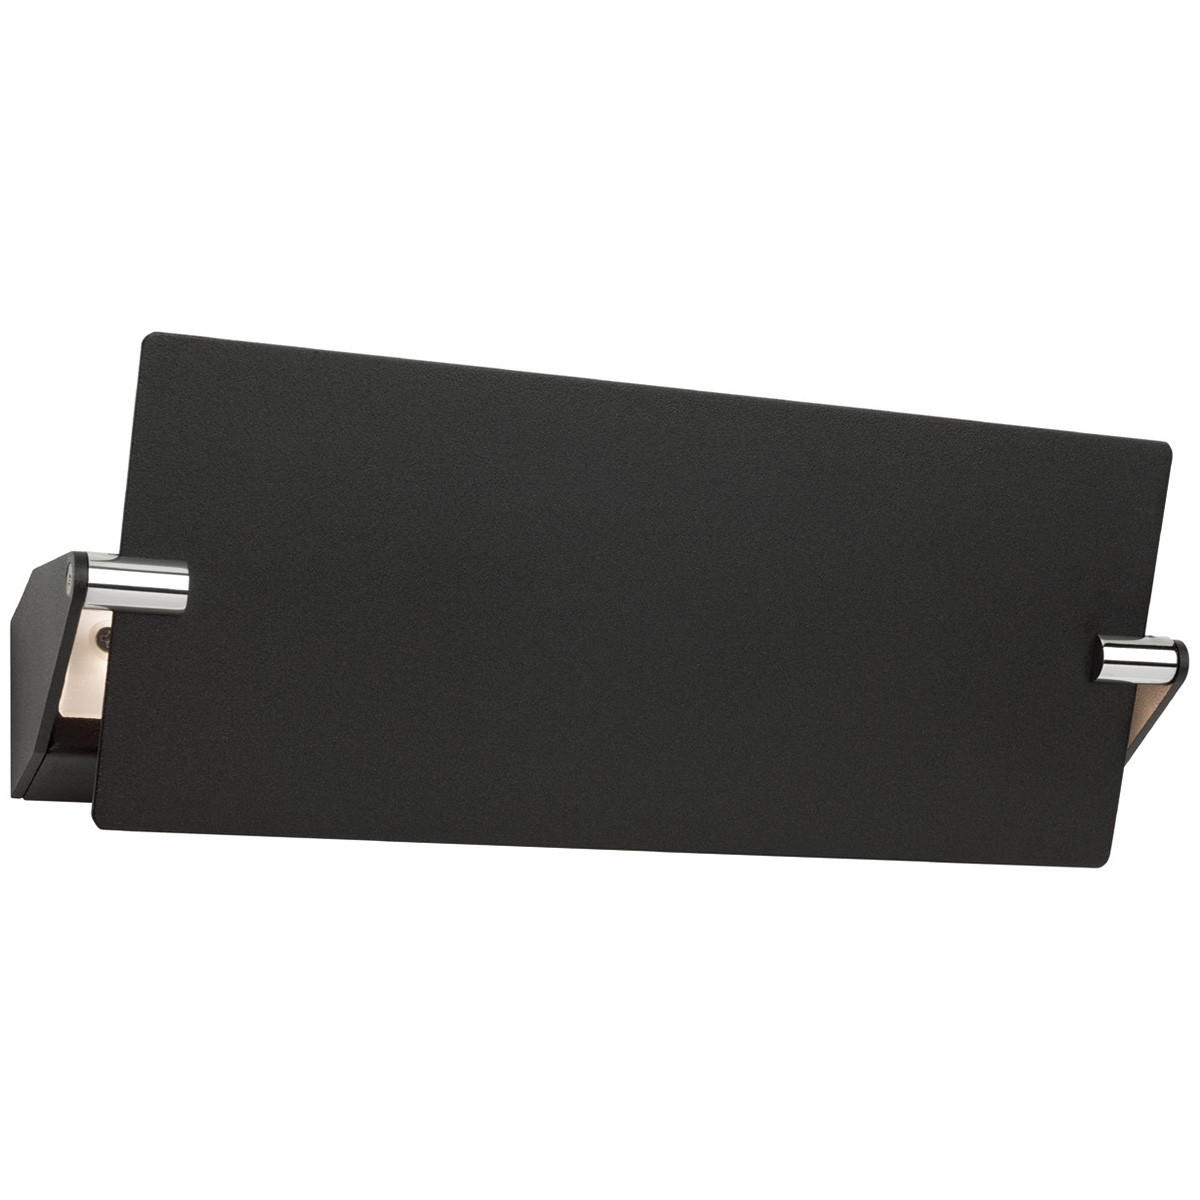 Bjorn LED Wall Light, Black